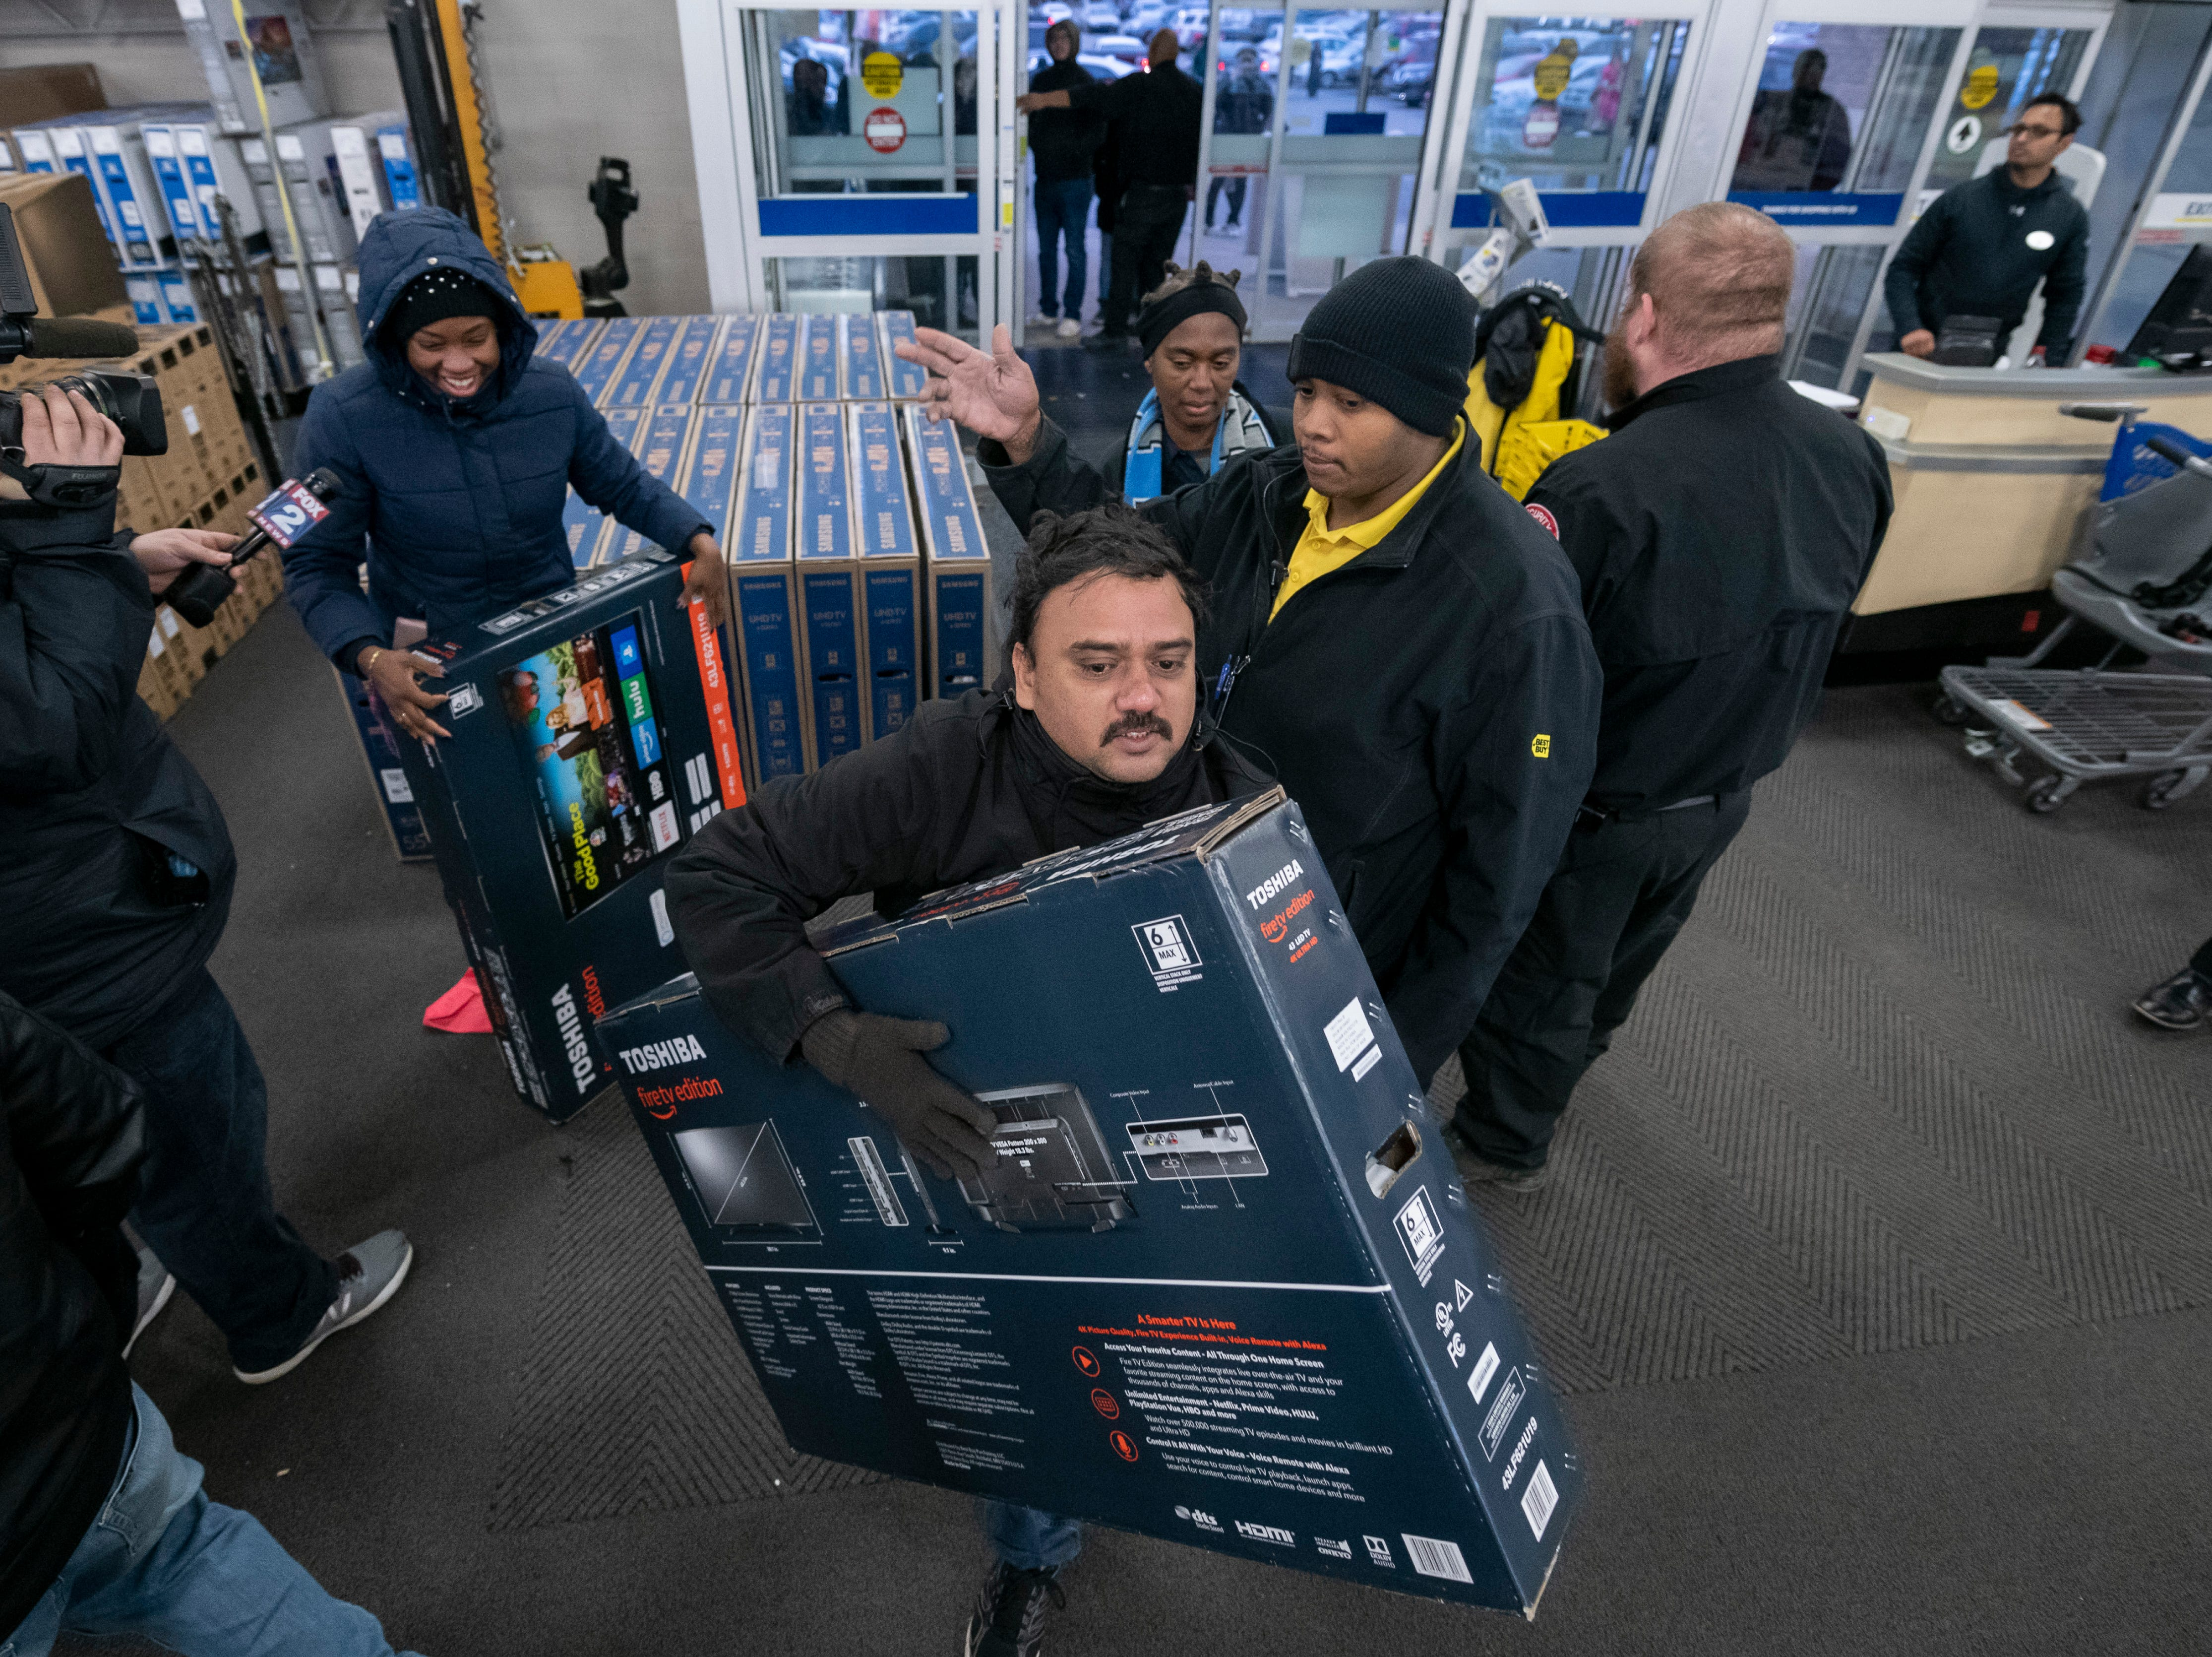 Shoppers grab televisions on sale.